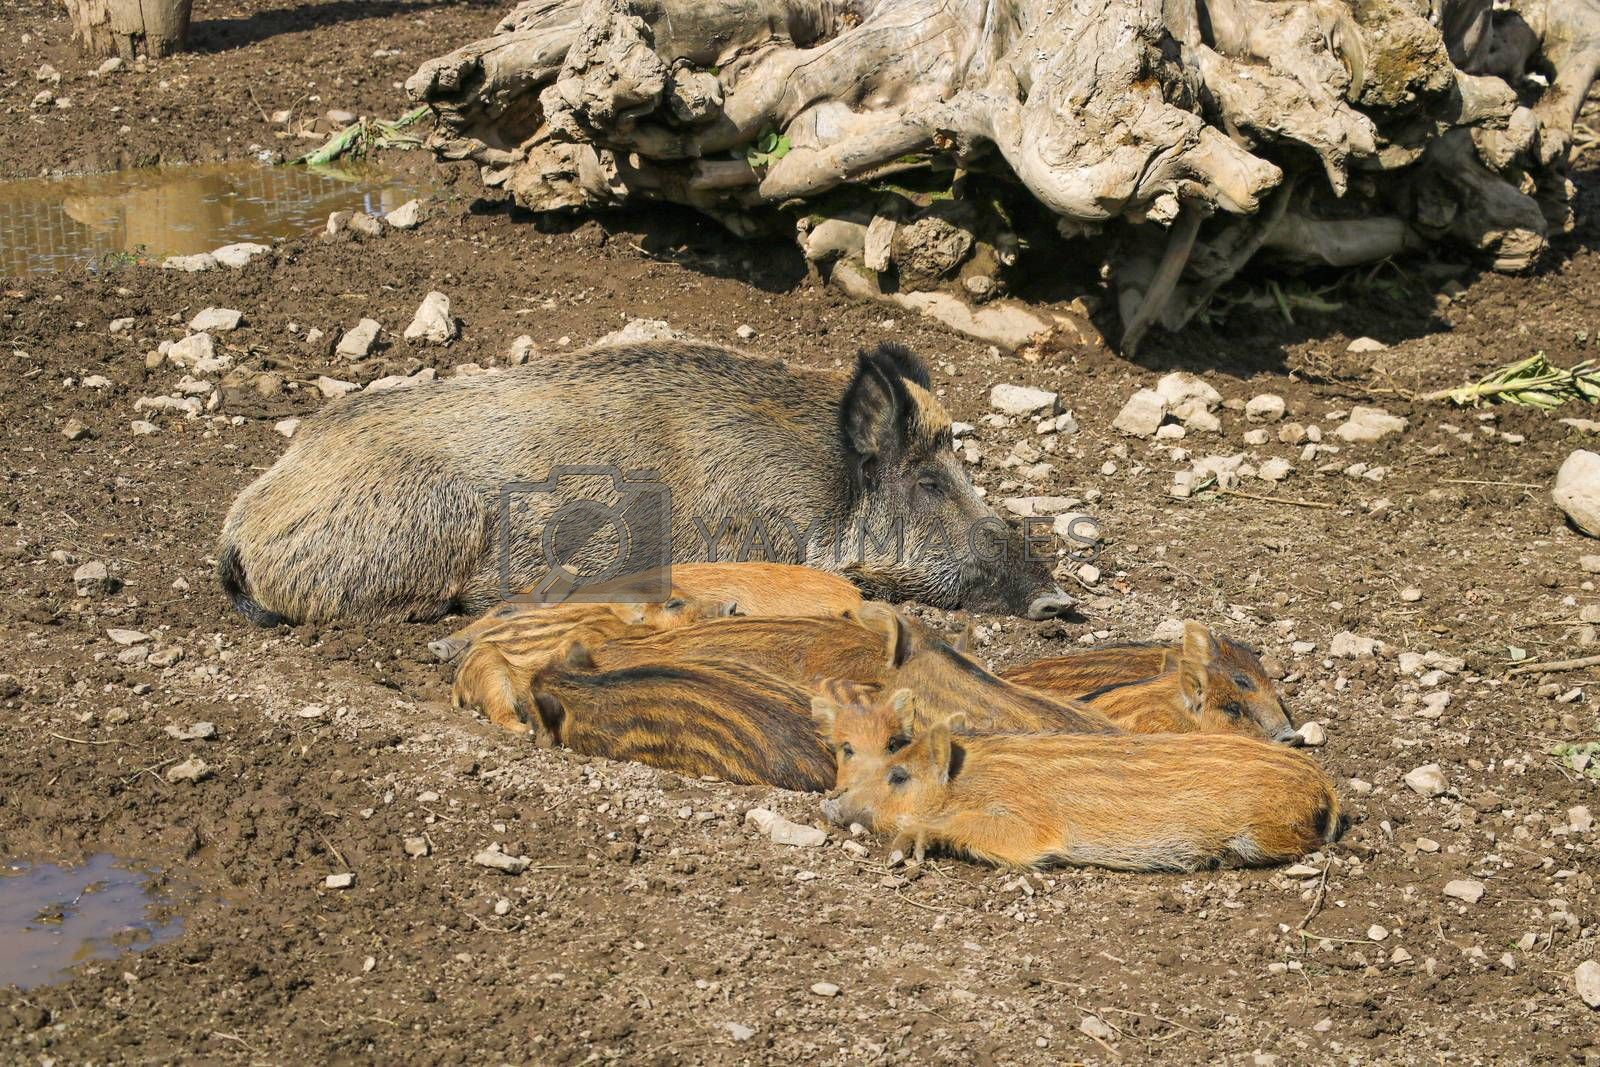 Wild big boar lies on the ground. Selective focus